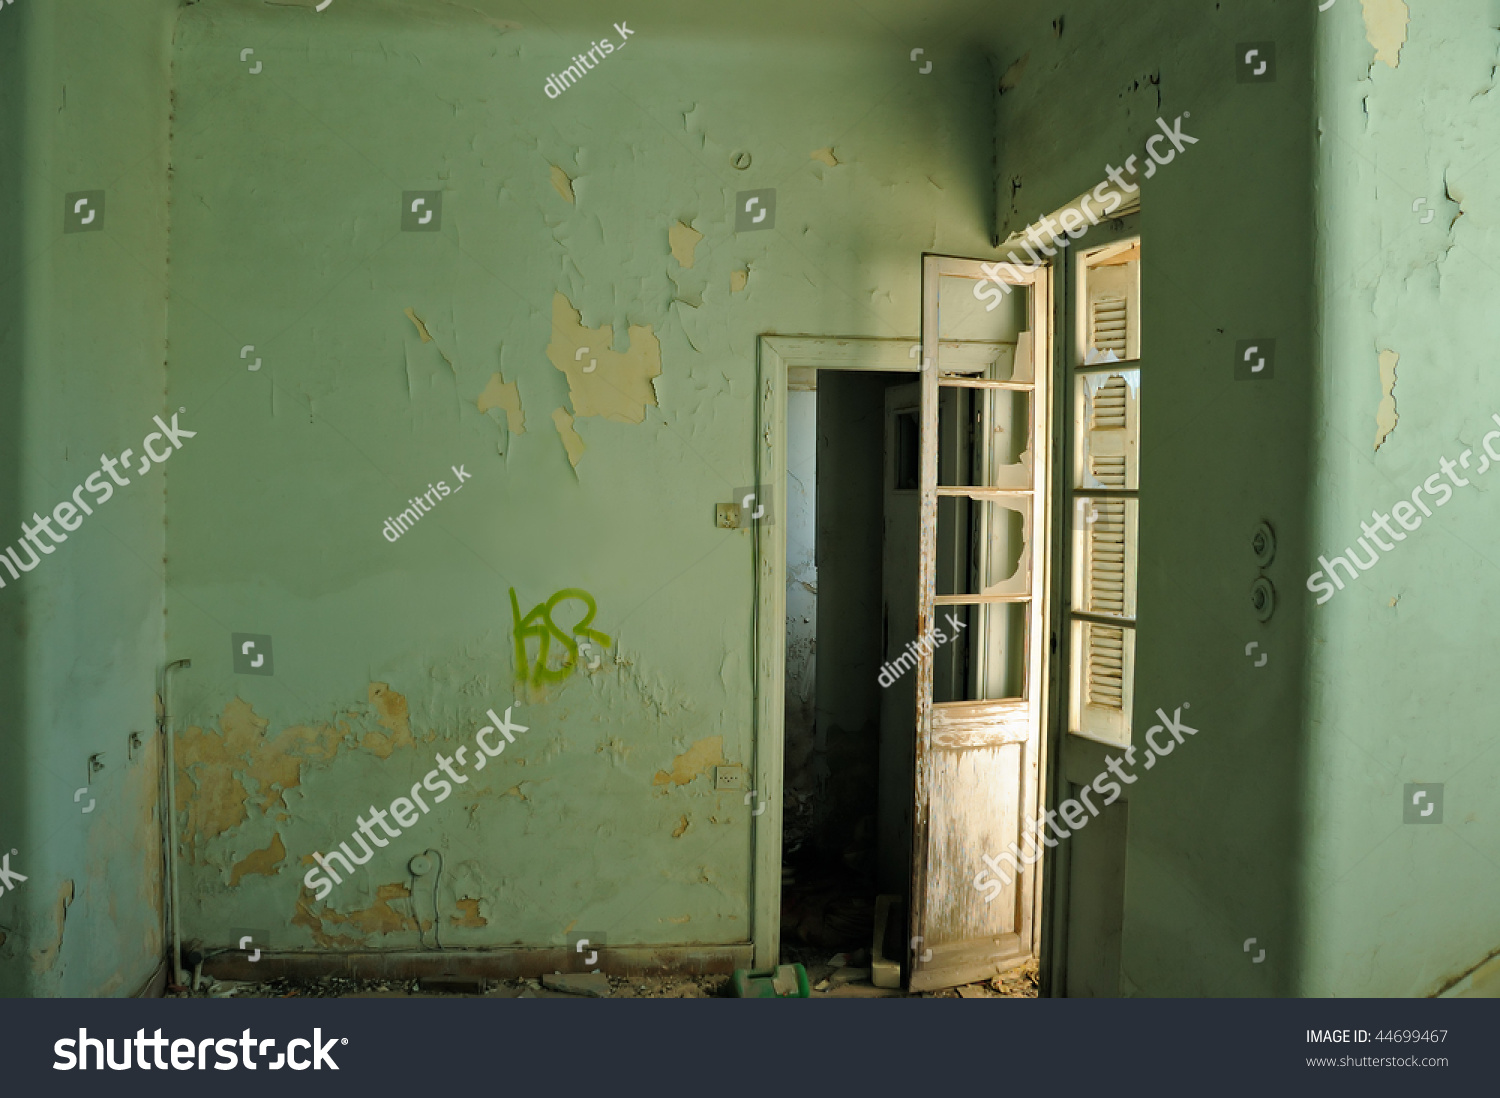 Empty Room And Textured Peeling Paint Wall Abandoned House Interior Stock Photo 44699467